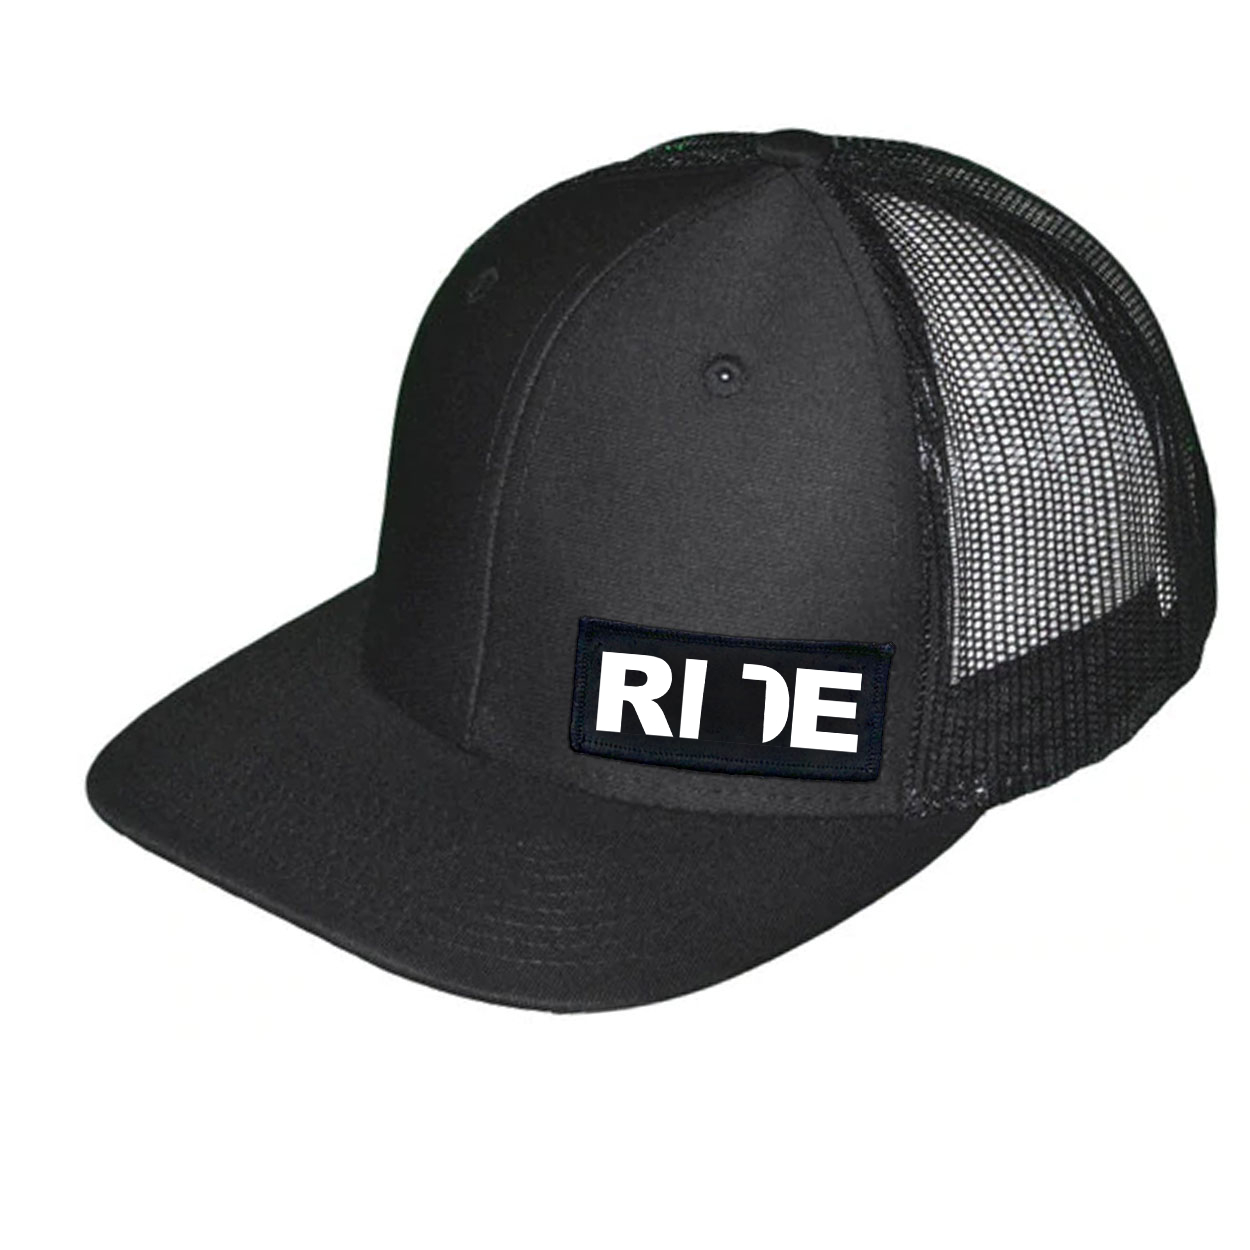 Ride Utah Night Out Woven Patch Snapback Trucker Hat Black (White Logo)